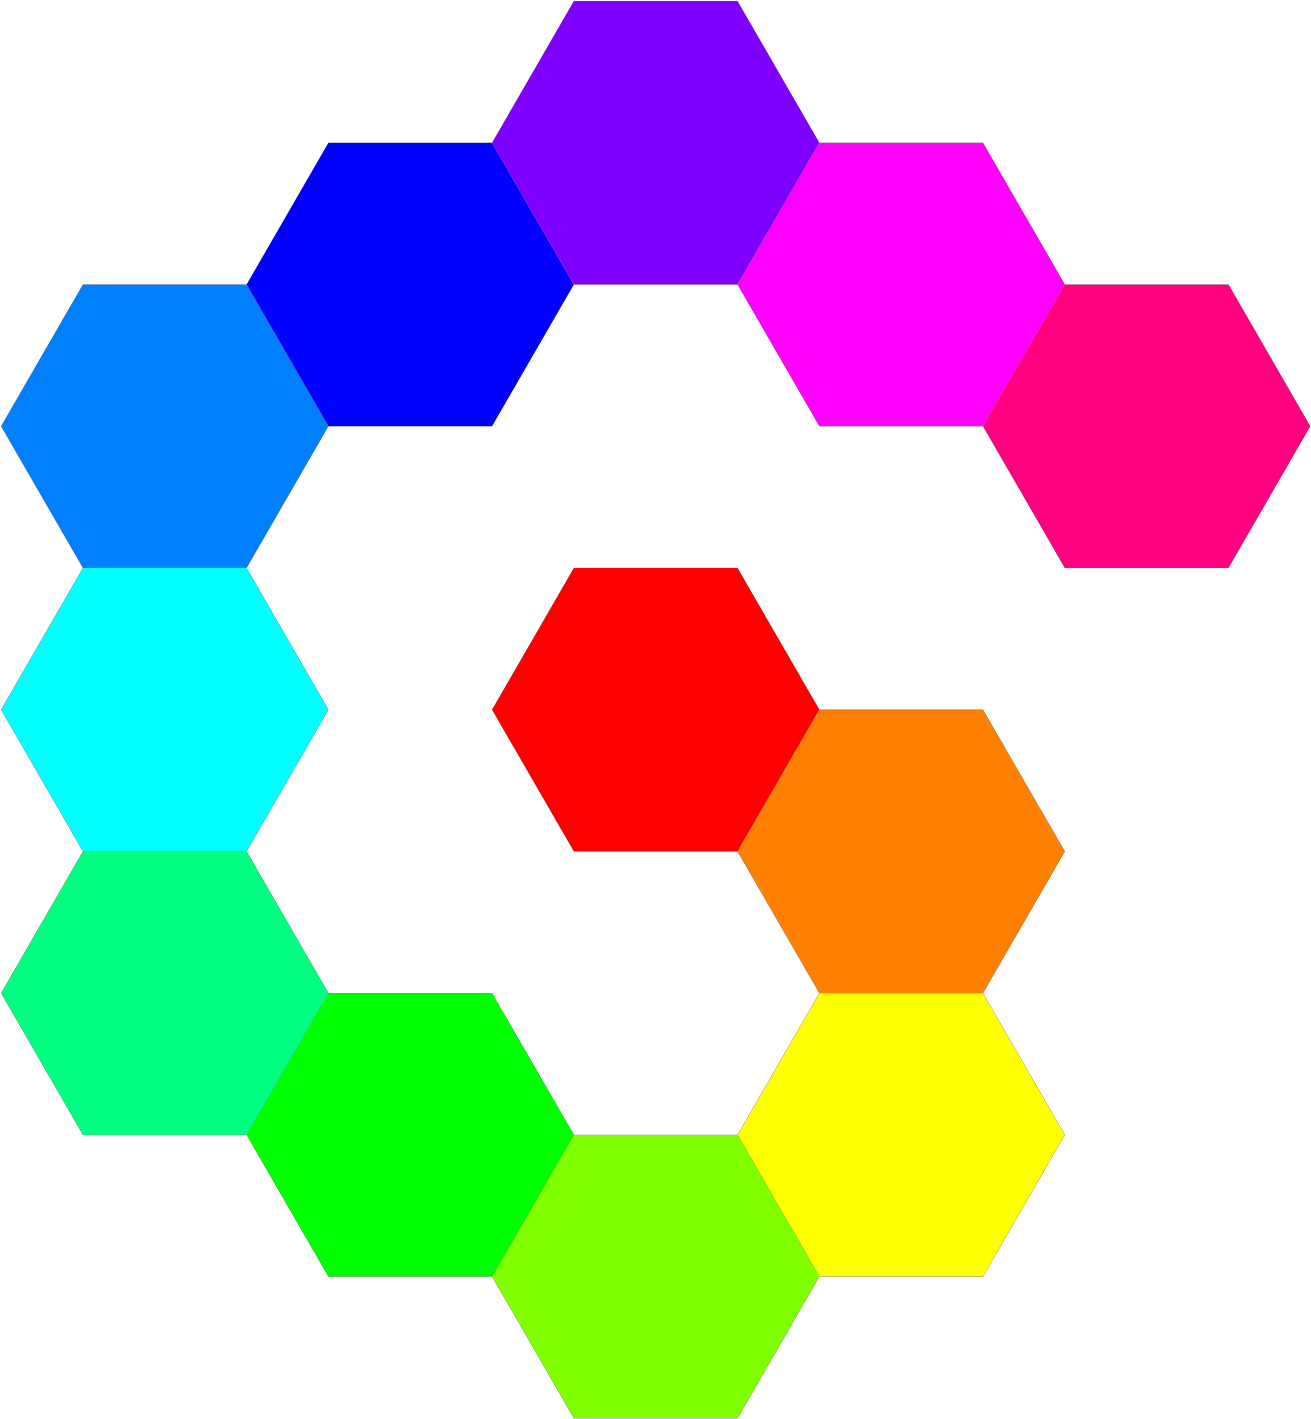 12 Hexagon Spiral Rainbow Svg Vector File Vector Clip Hexagons Rainbow Colored Png Download Full Size Clipart 135876 Pinclipart